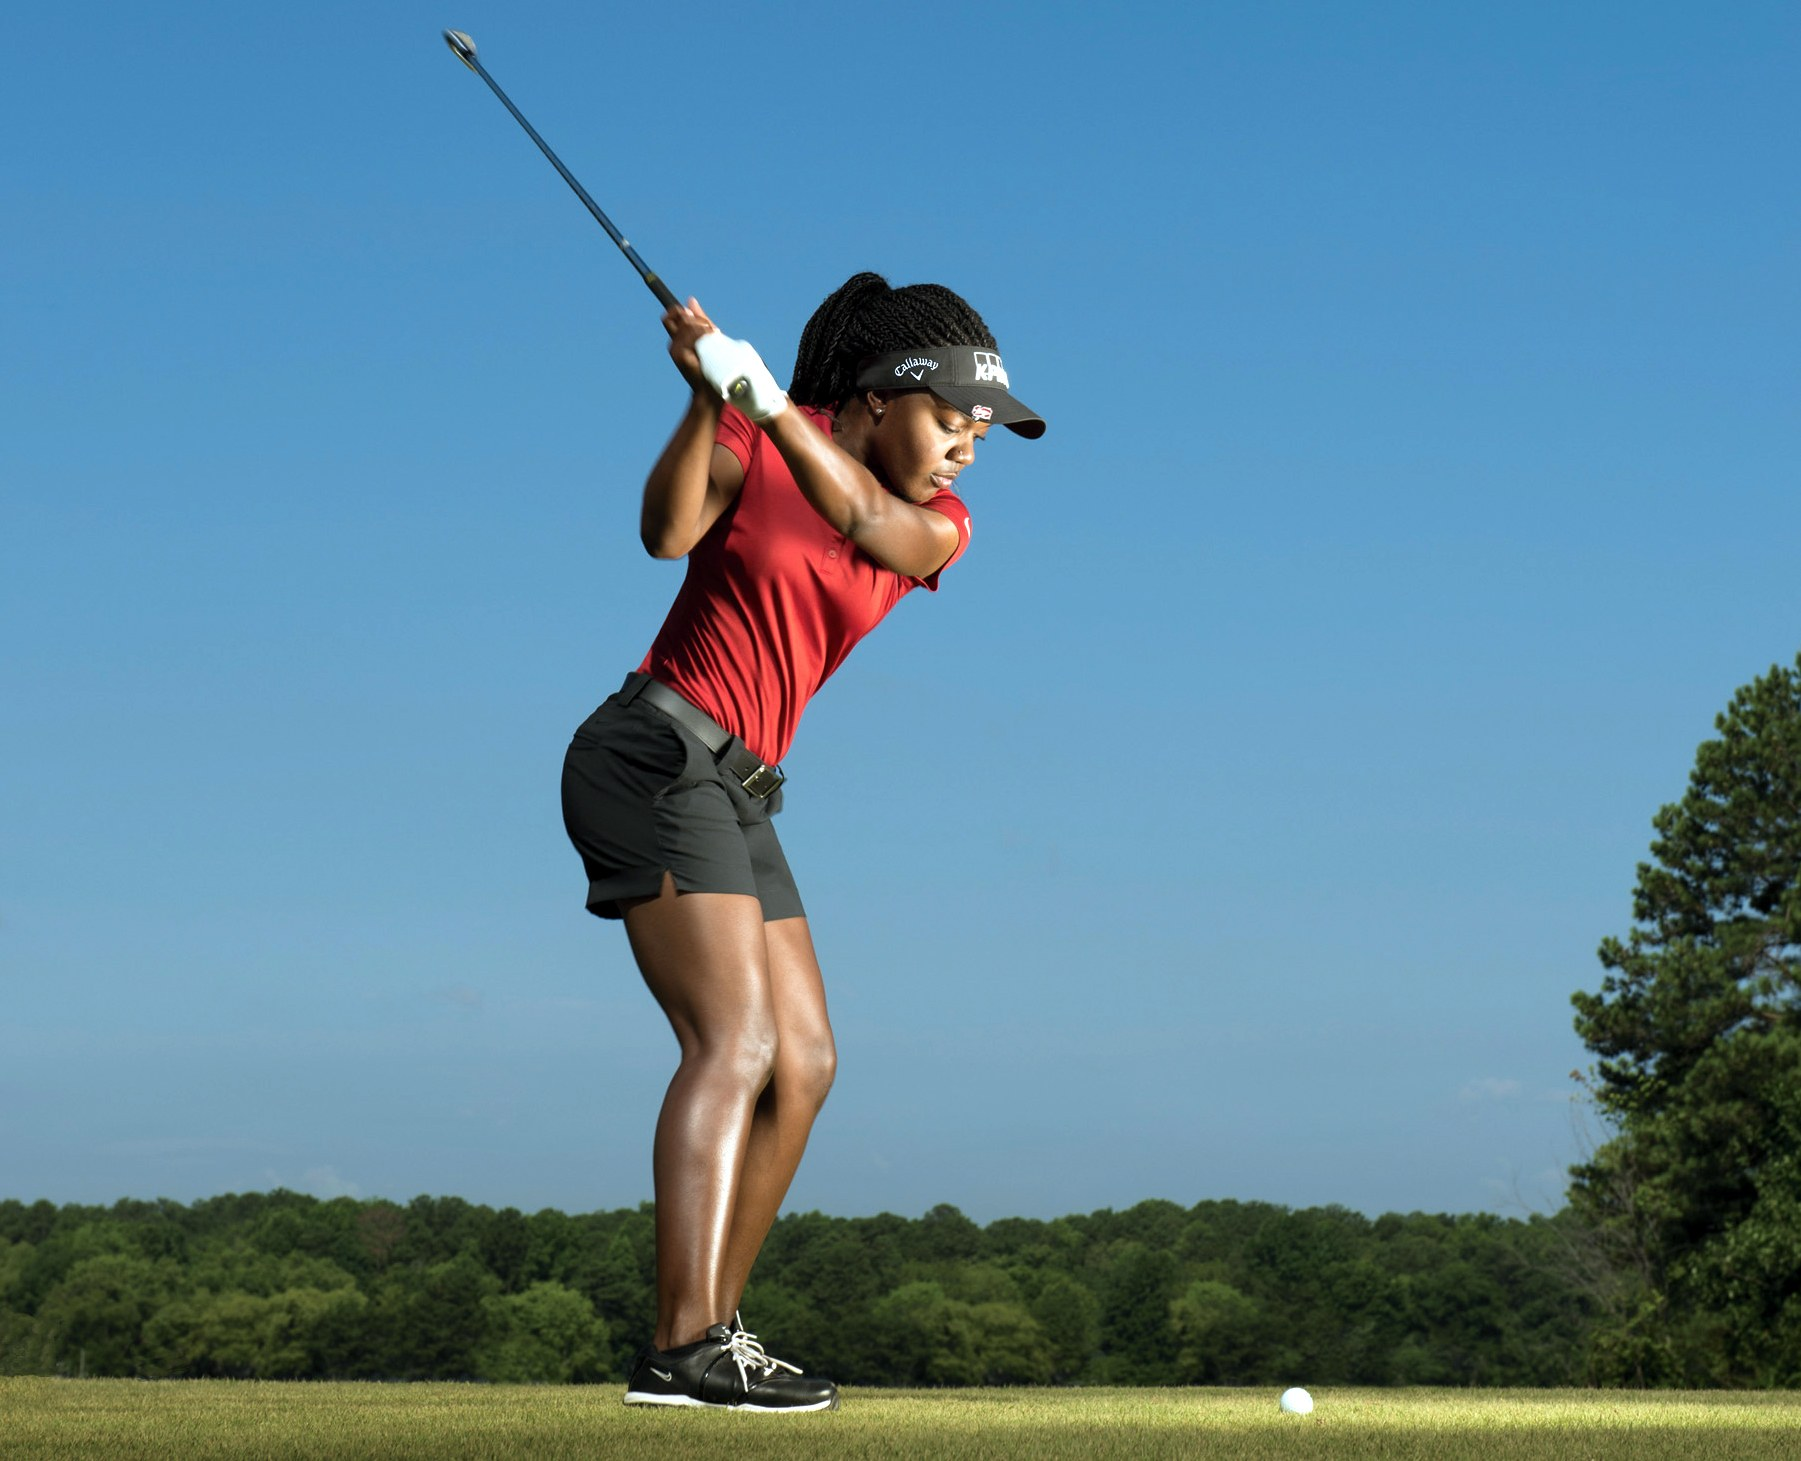 Golf for Beginners: Tips, Instruction, How to Play - Golf Digest